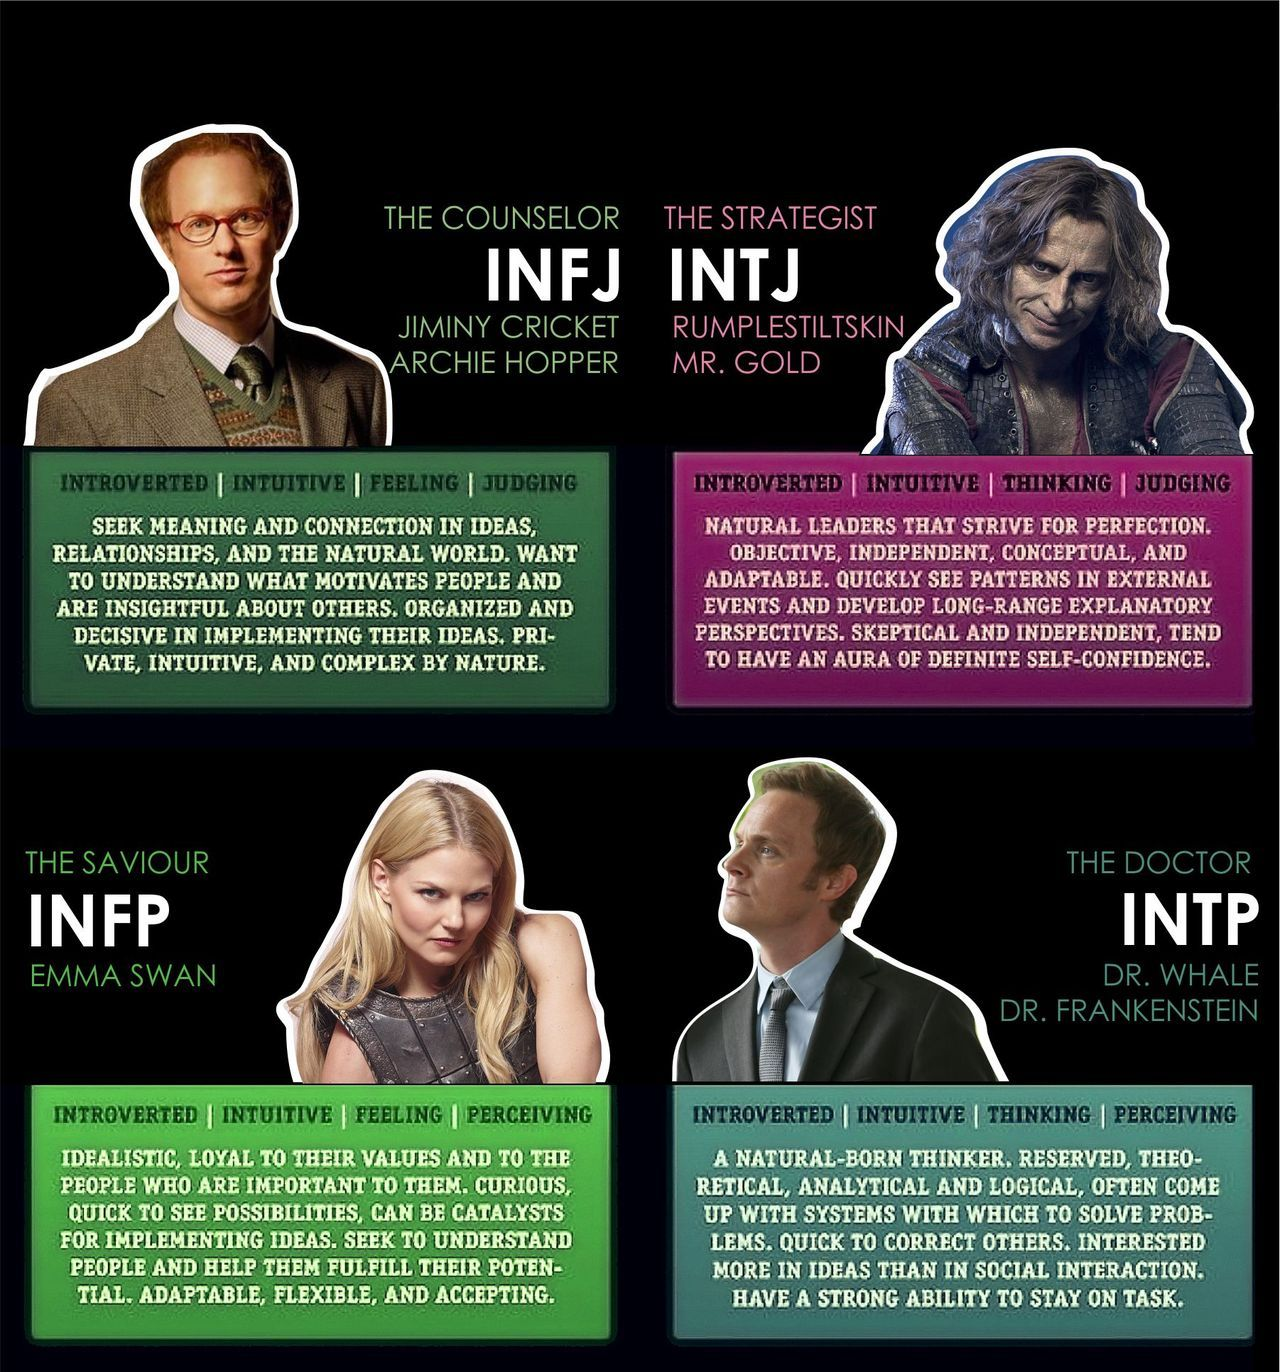 intp dating infp